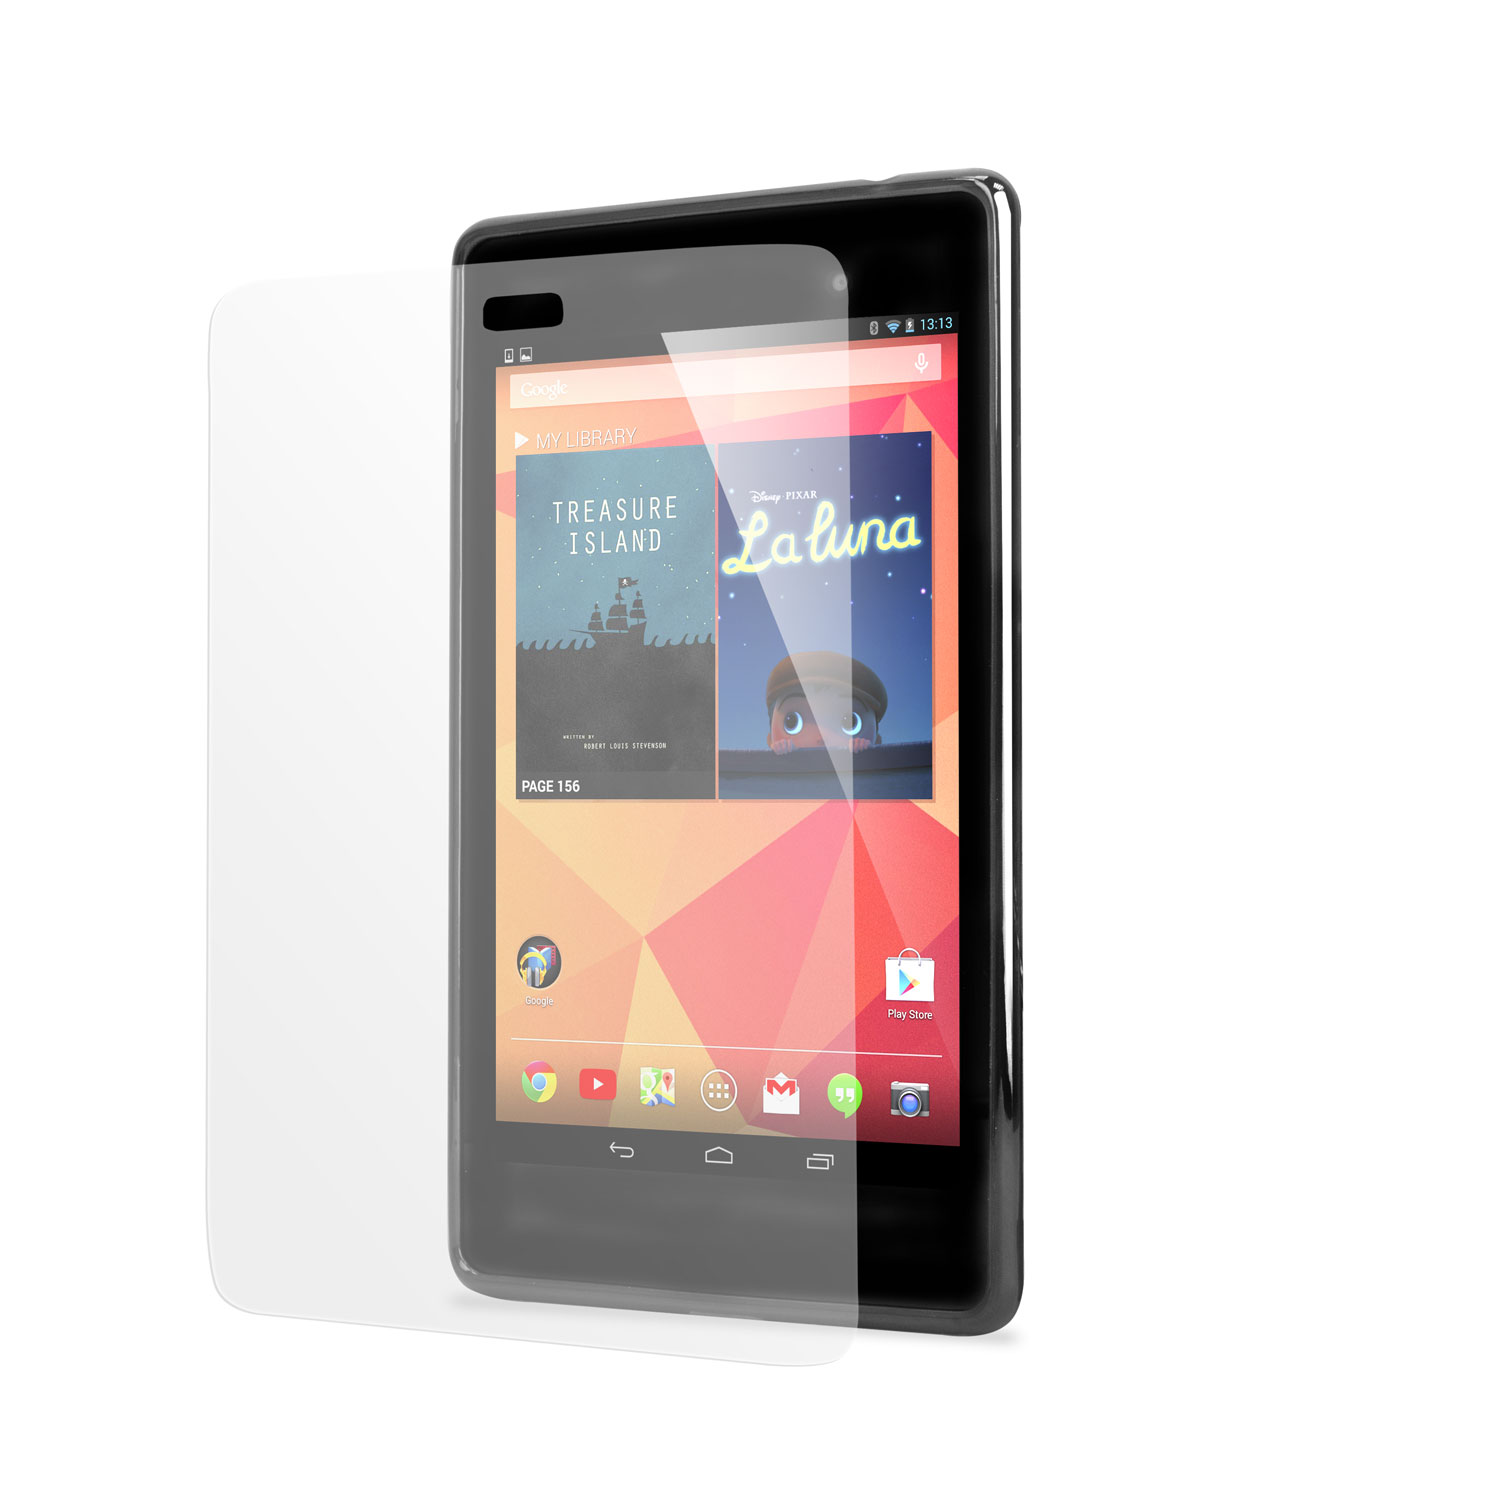 The Ultimate Google Nexus 7 2 Accessory Pack